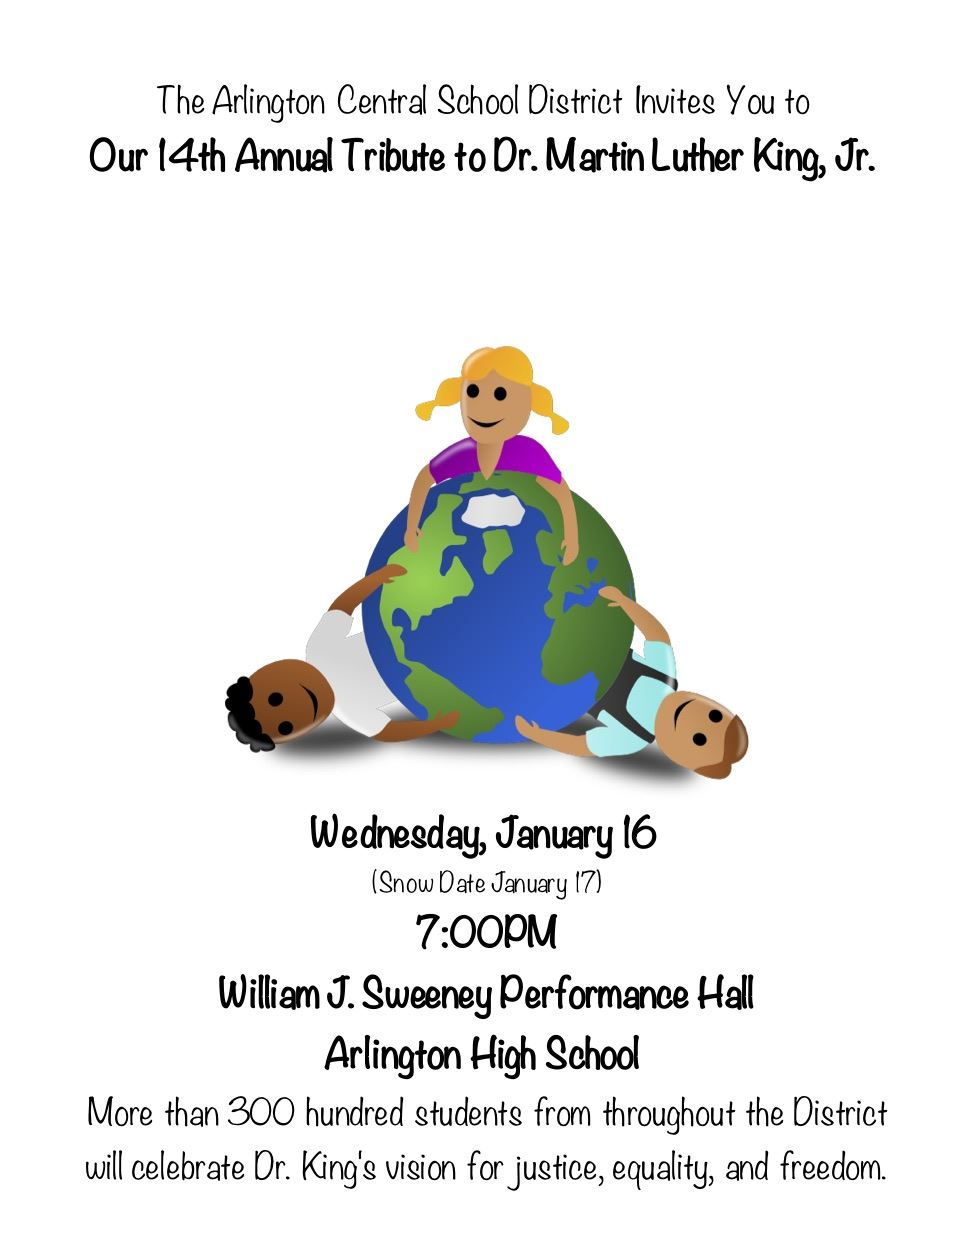 Our 14th Annual Tribute to Dr. Martin Luther King, Jr.